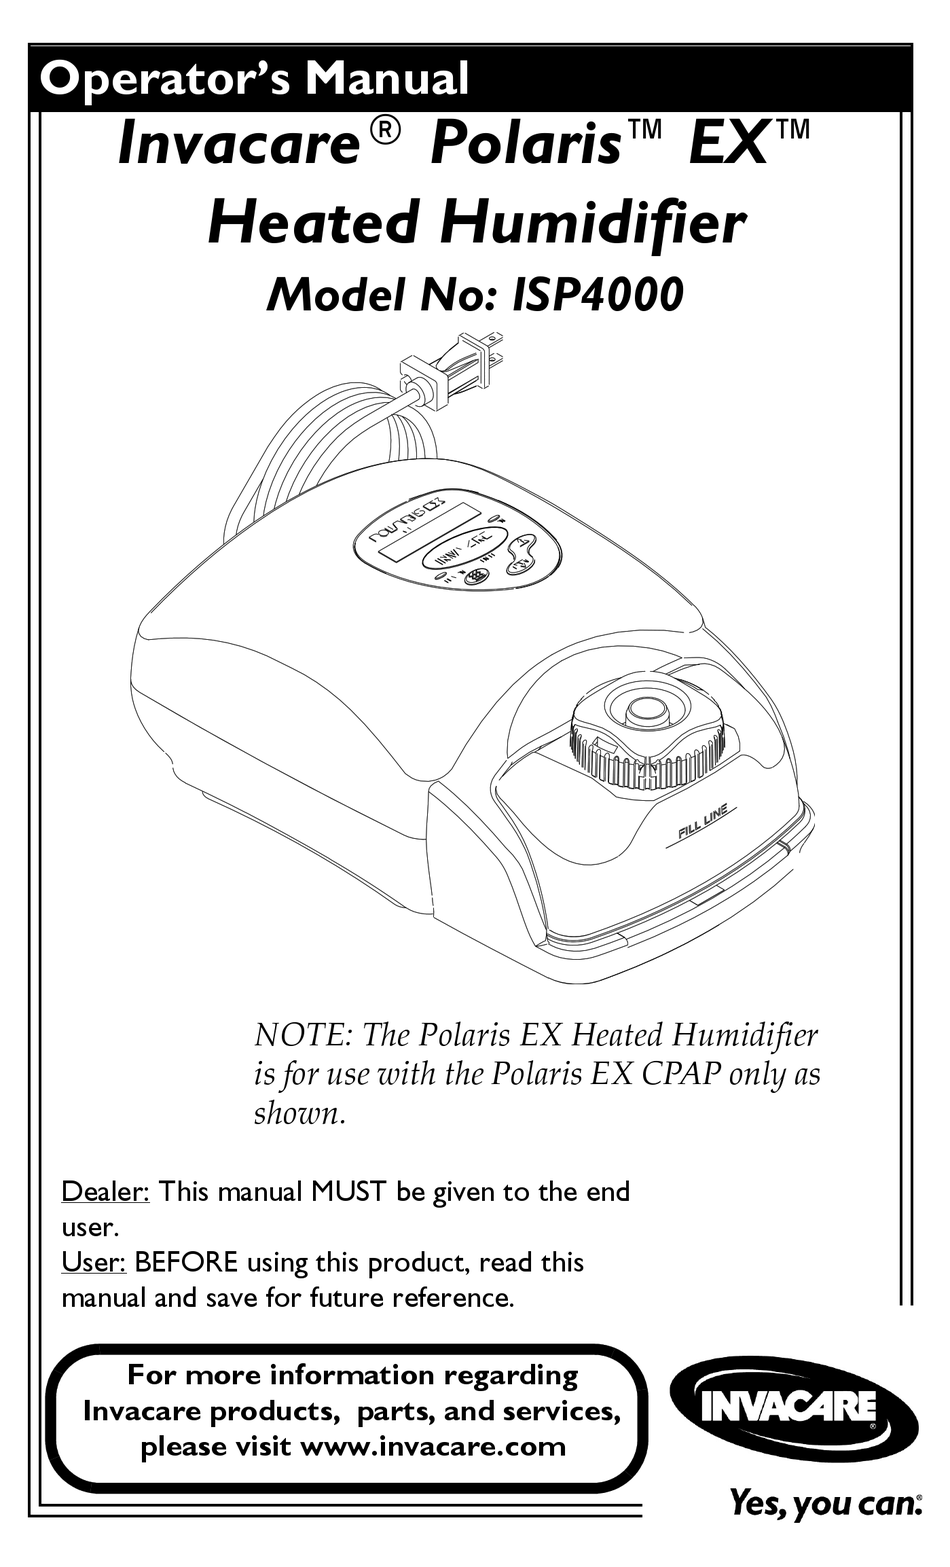 INVACARE POLARIS EX ISP4000 OPERATOR'S MANUAL Pdf Download